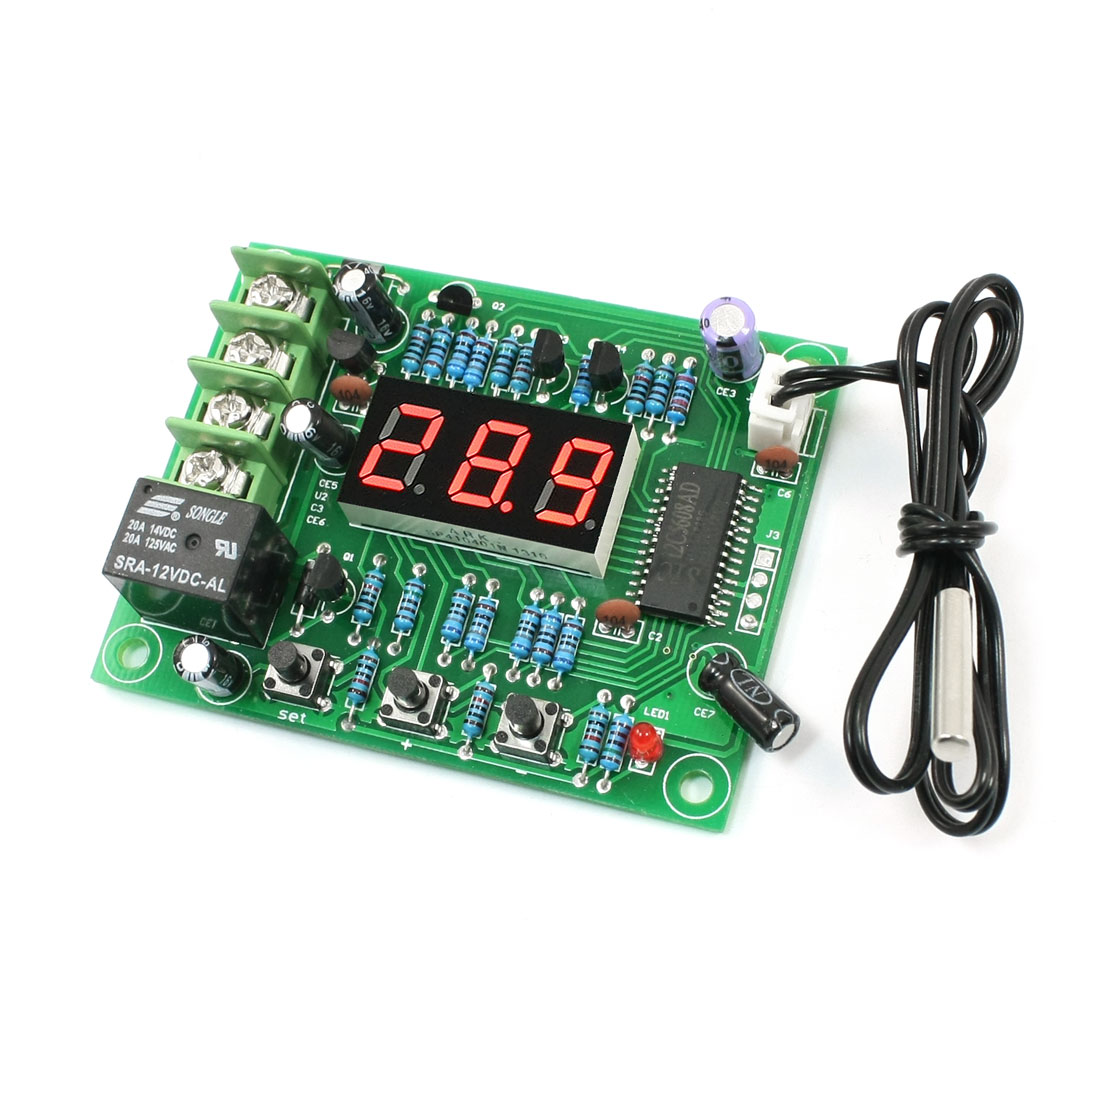 -50-110C 1C Accuracy Temperature Detect Switch Module DC 12V w Probe